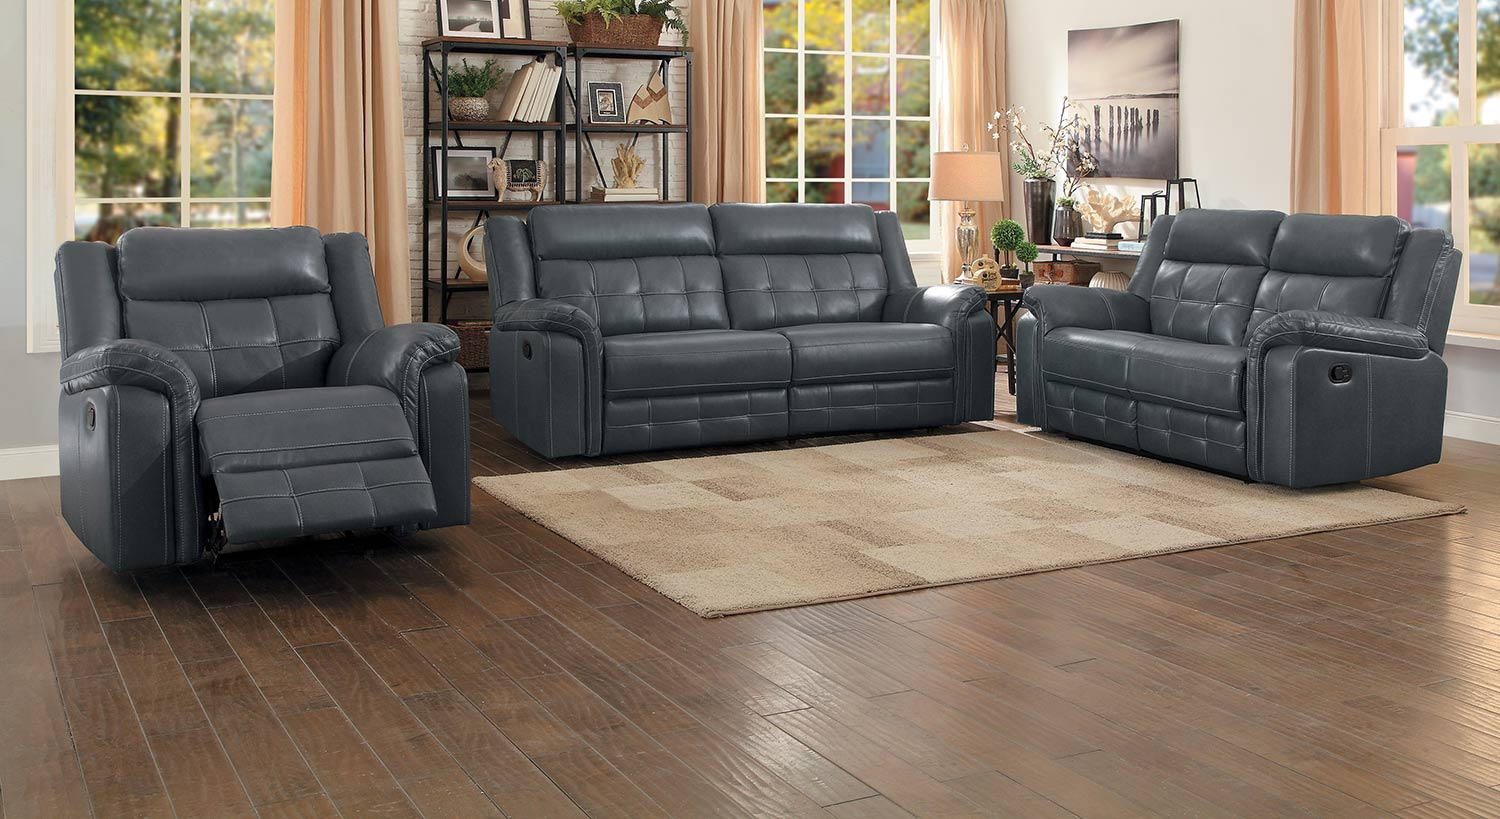 Homelegance Keridge Double Reclining Sofa Set - Gray AireHyde